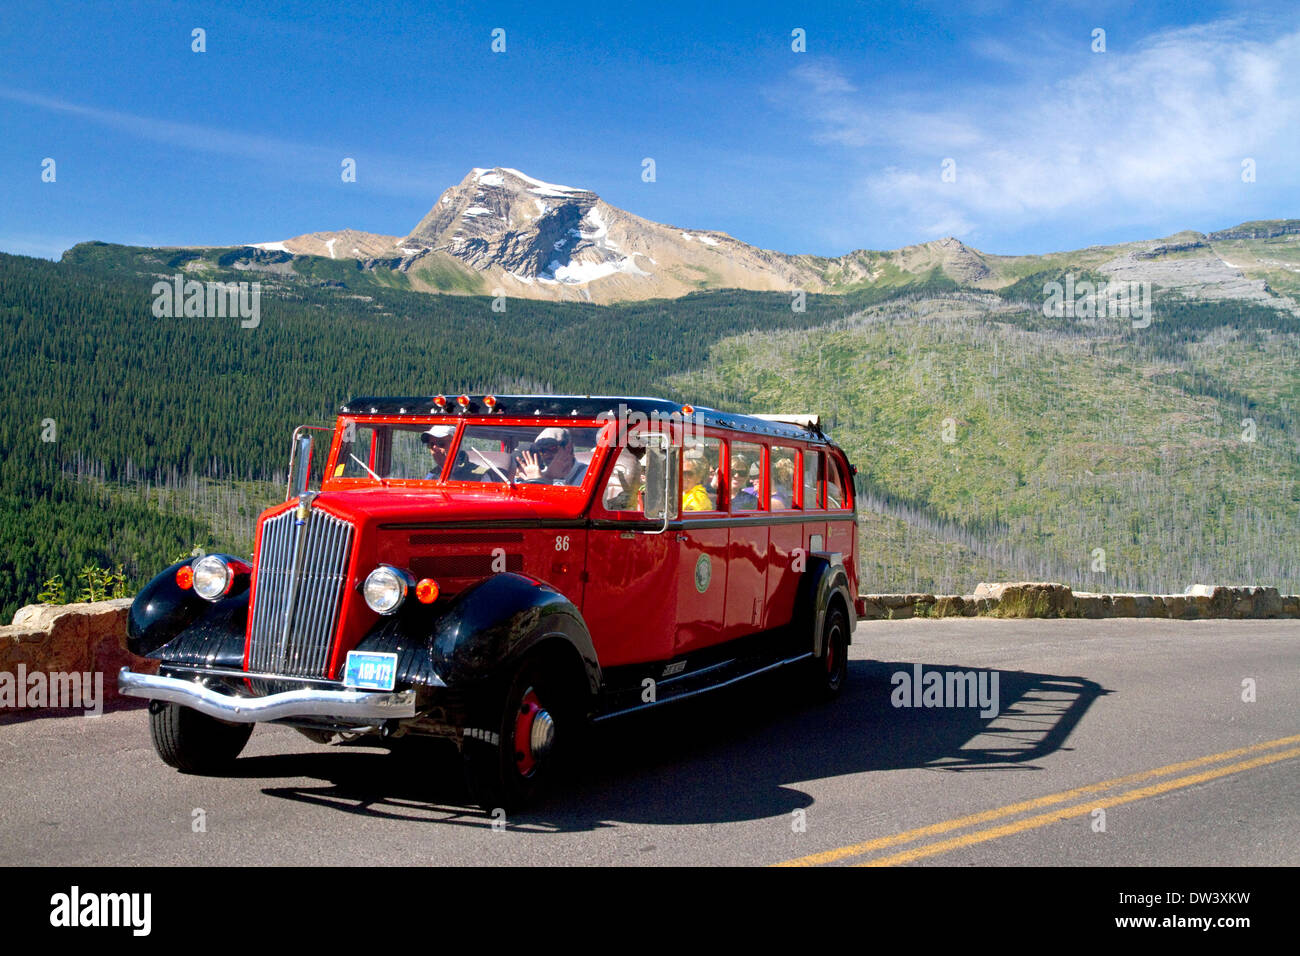 Red Jammer bus on the Going-to-the-Sun Road in Glacier National Park, Montana, USA. - Stock Image